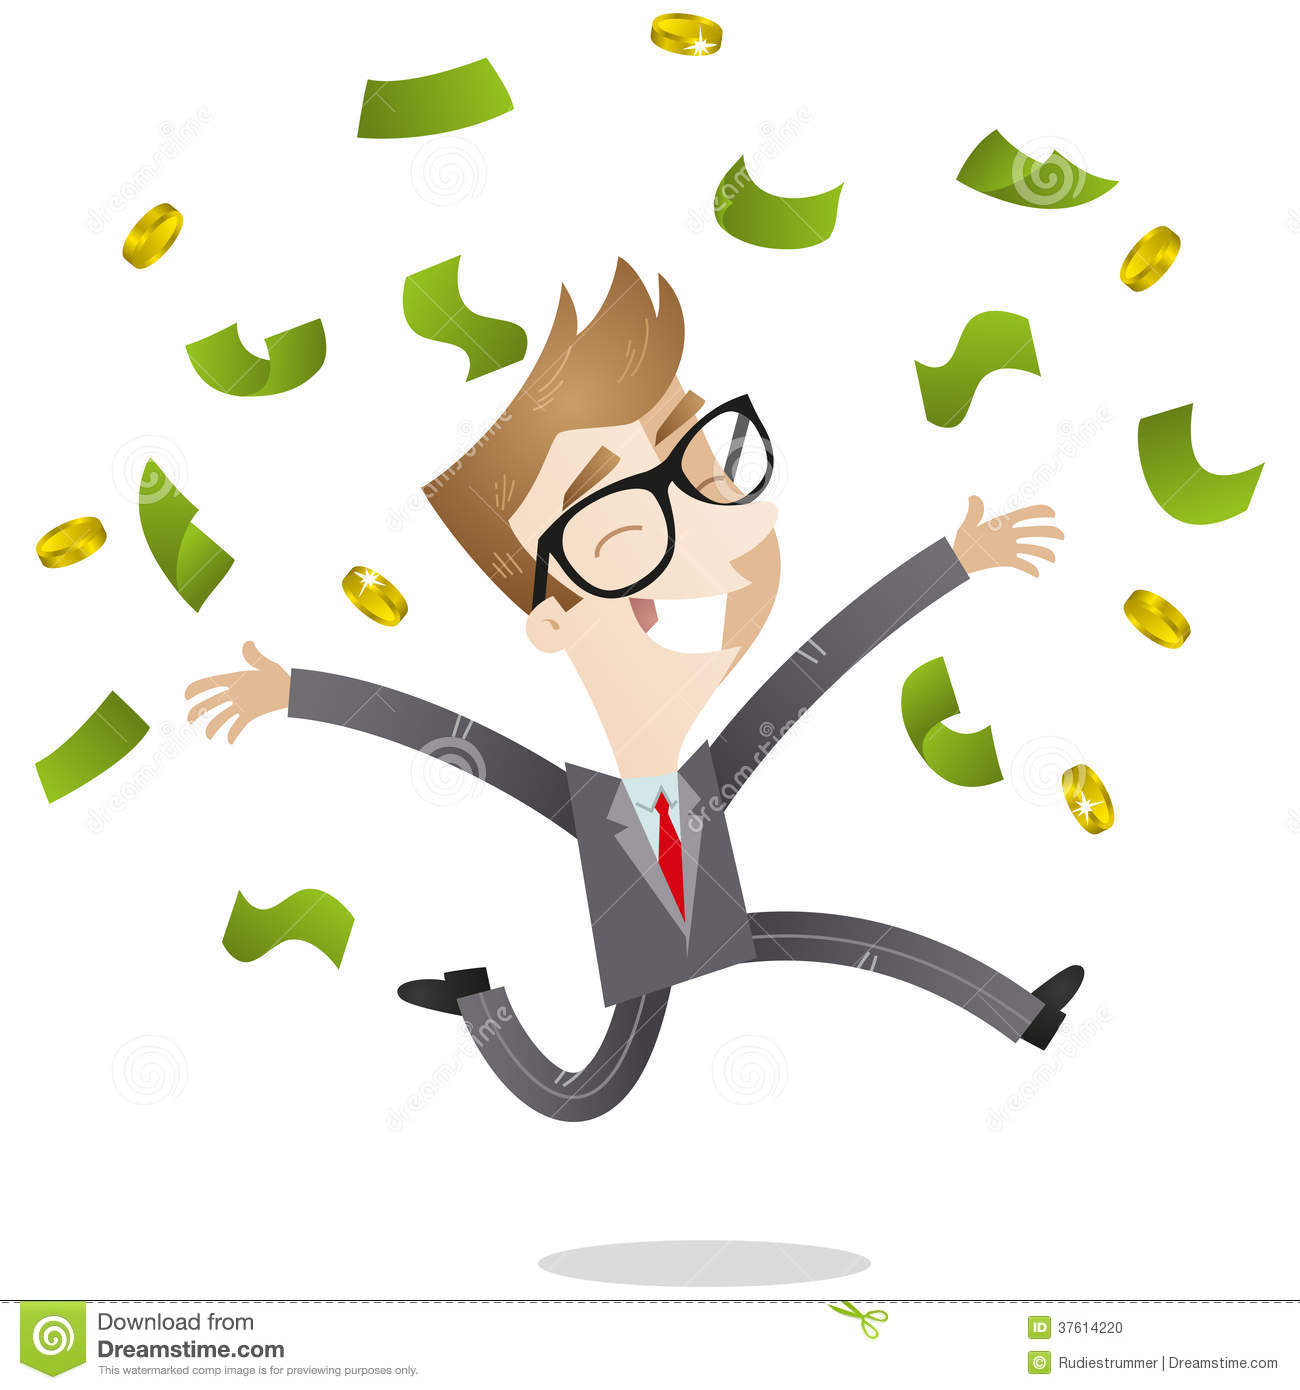 Lucky person clipart graphic transparent Lucky Businessman Throwing Bank Notes Up Stock Photo - Image: 37614220 graphic transparent